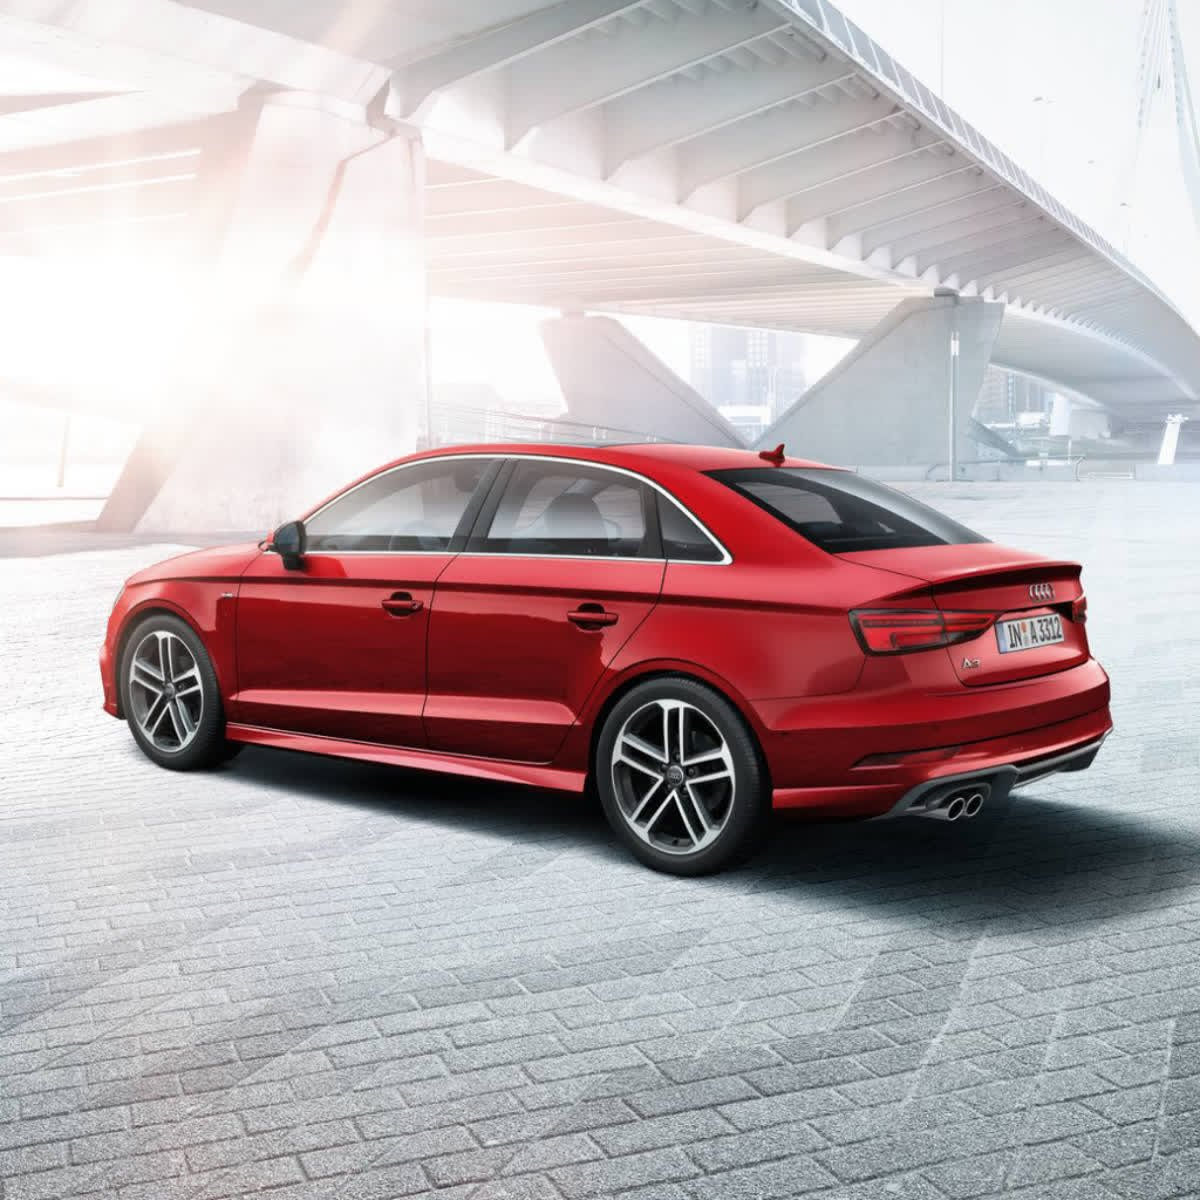 Audi Centre N On Twitter Get Rates Of Up To Prime Less Or A - Prime audi